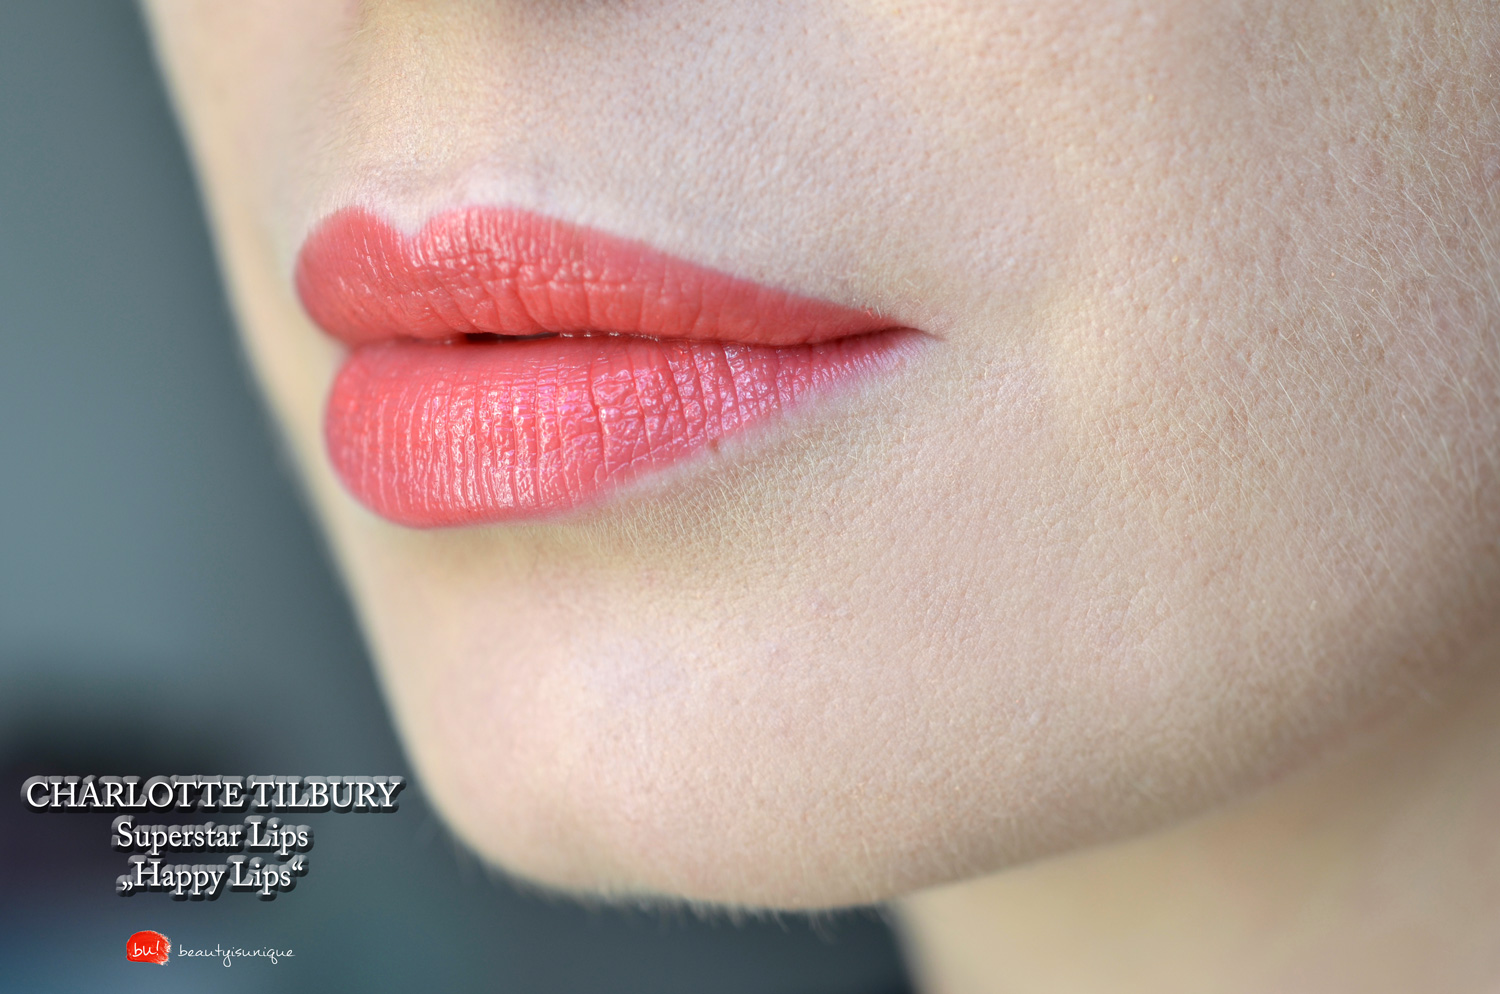 Charlotte-tilbury-happy-lips-super-star-lips